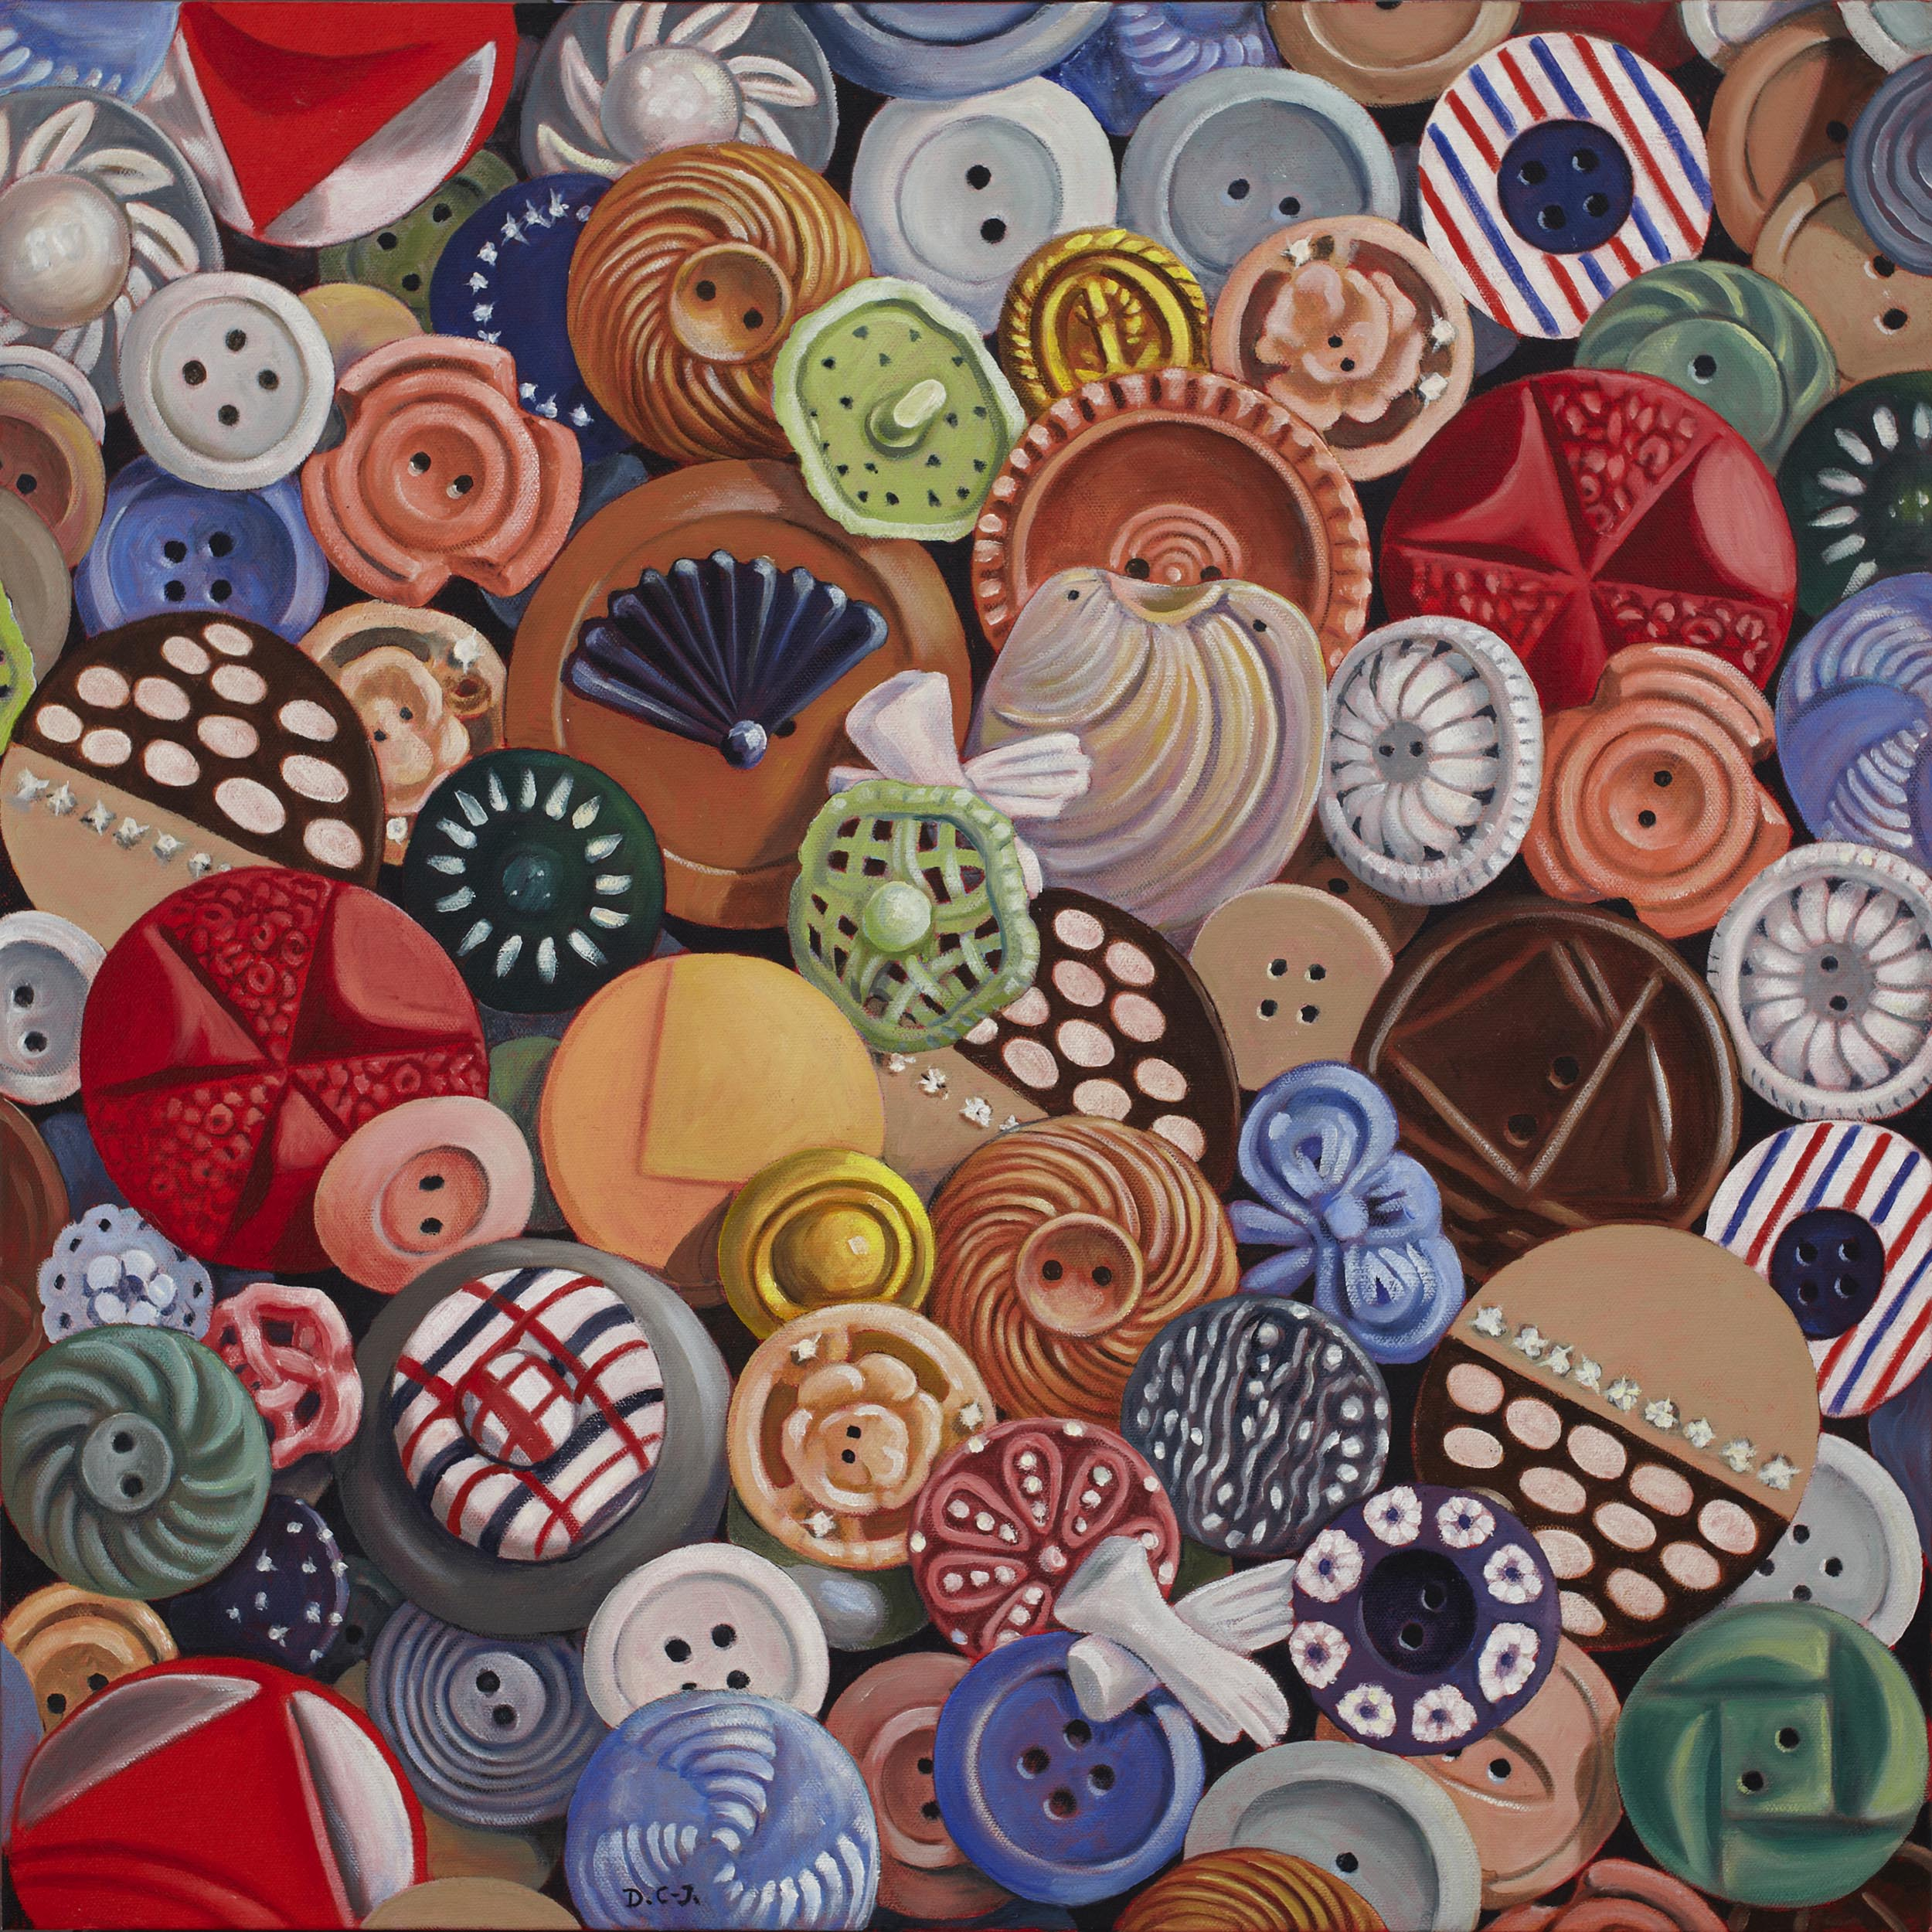 Buttons, 24 x 24 inches